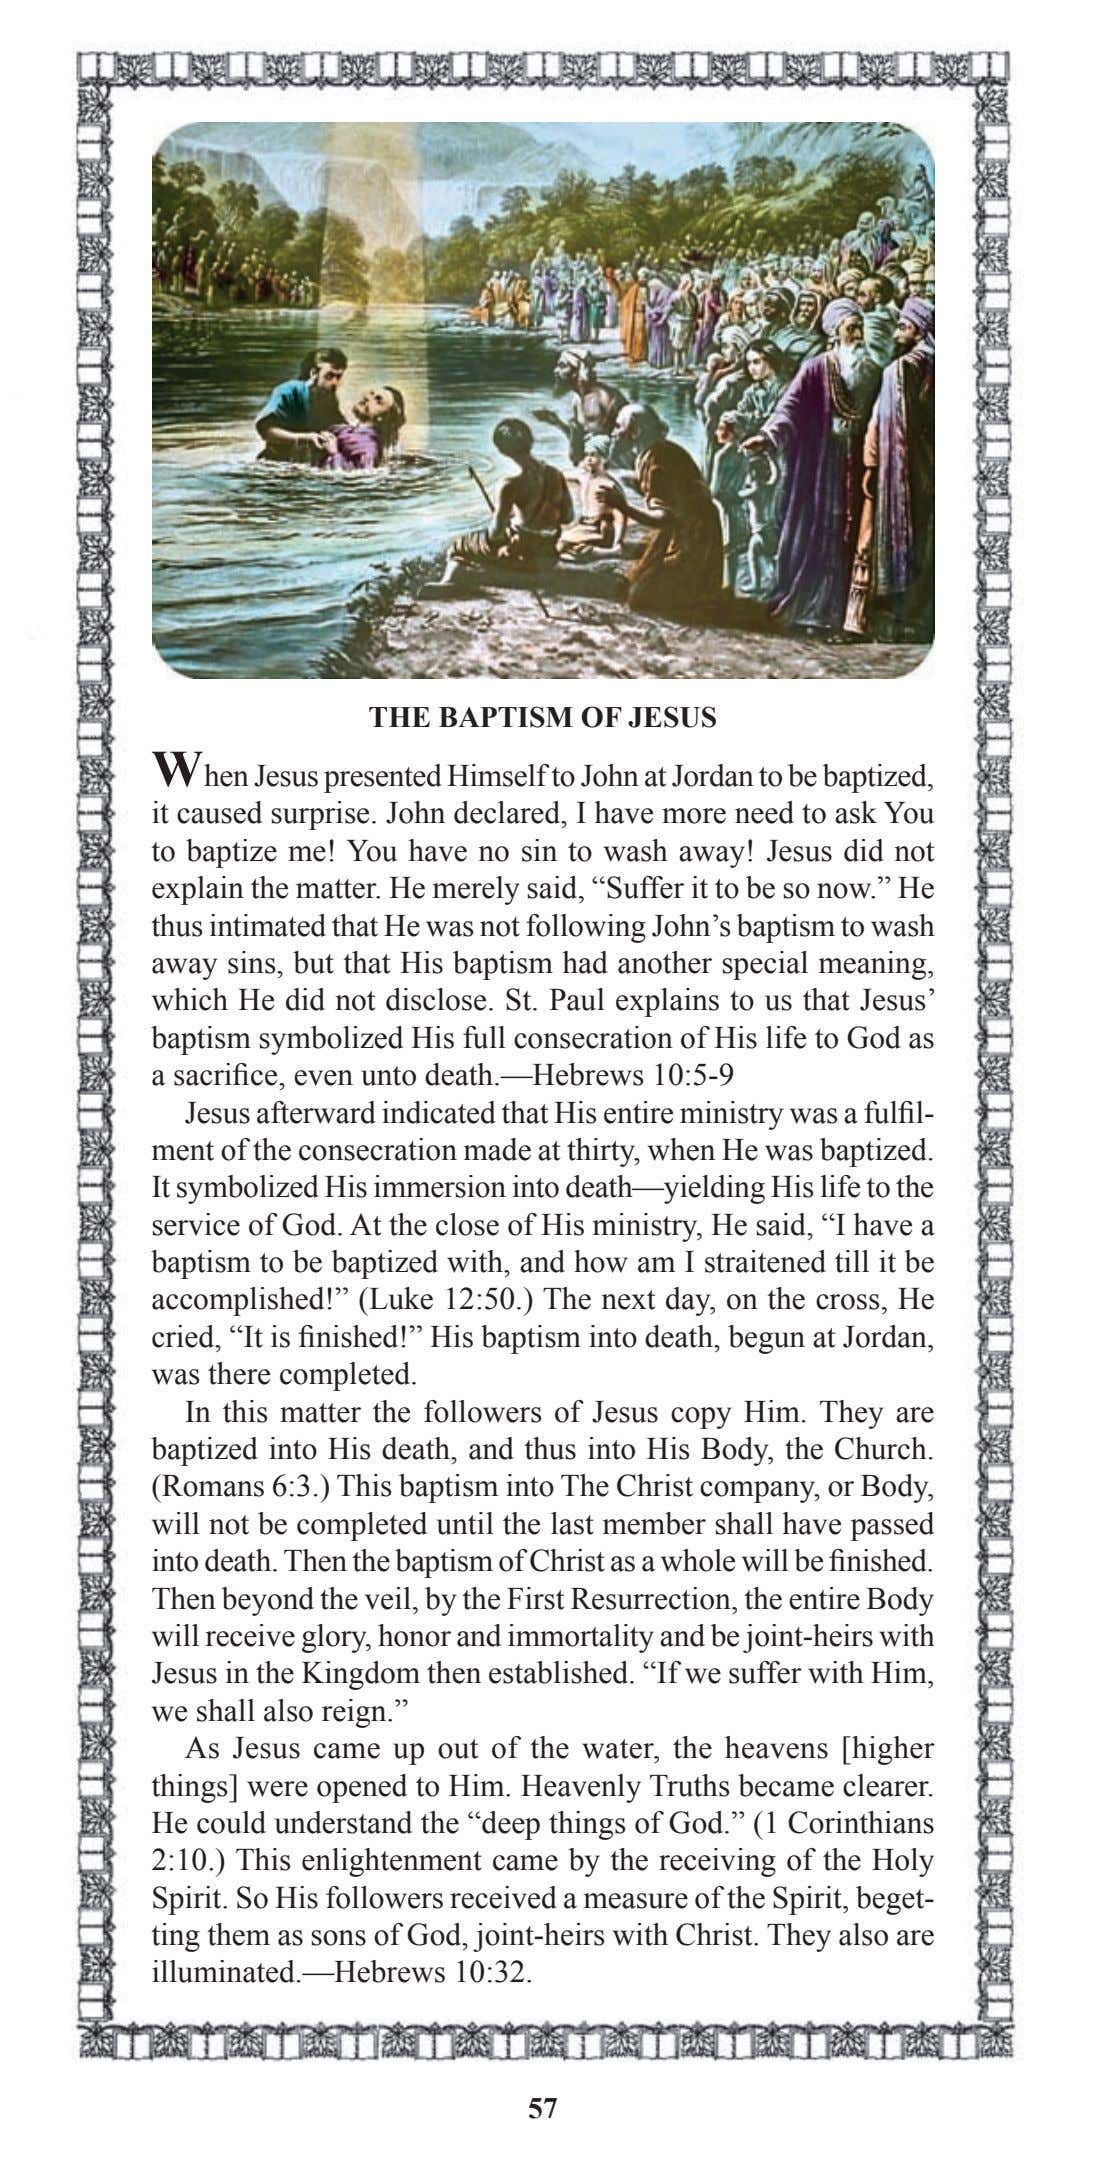 THE BAPTISM OF JESUS When Jesus presented Himself to John at Jordan to be baptized,